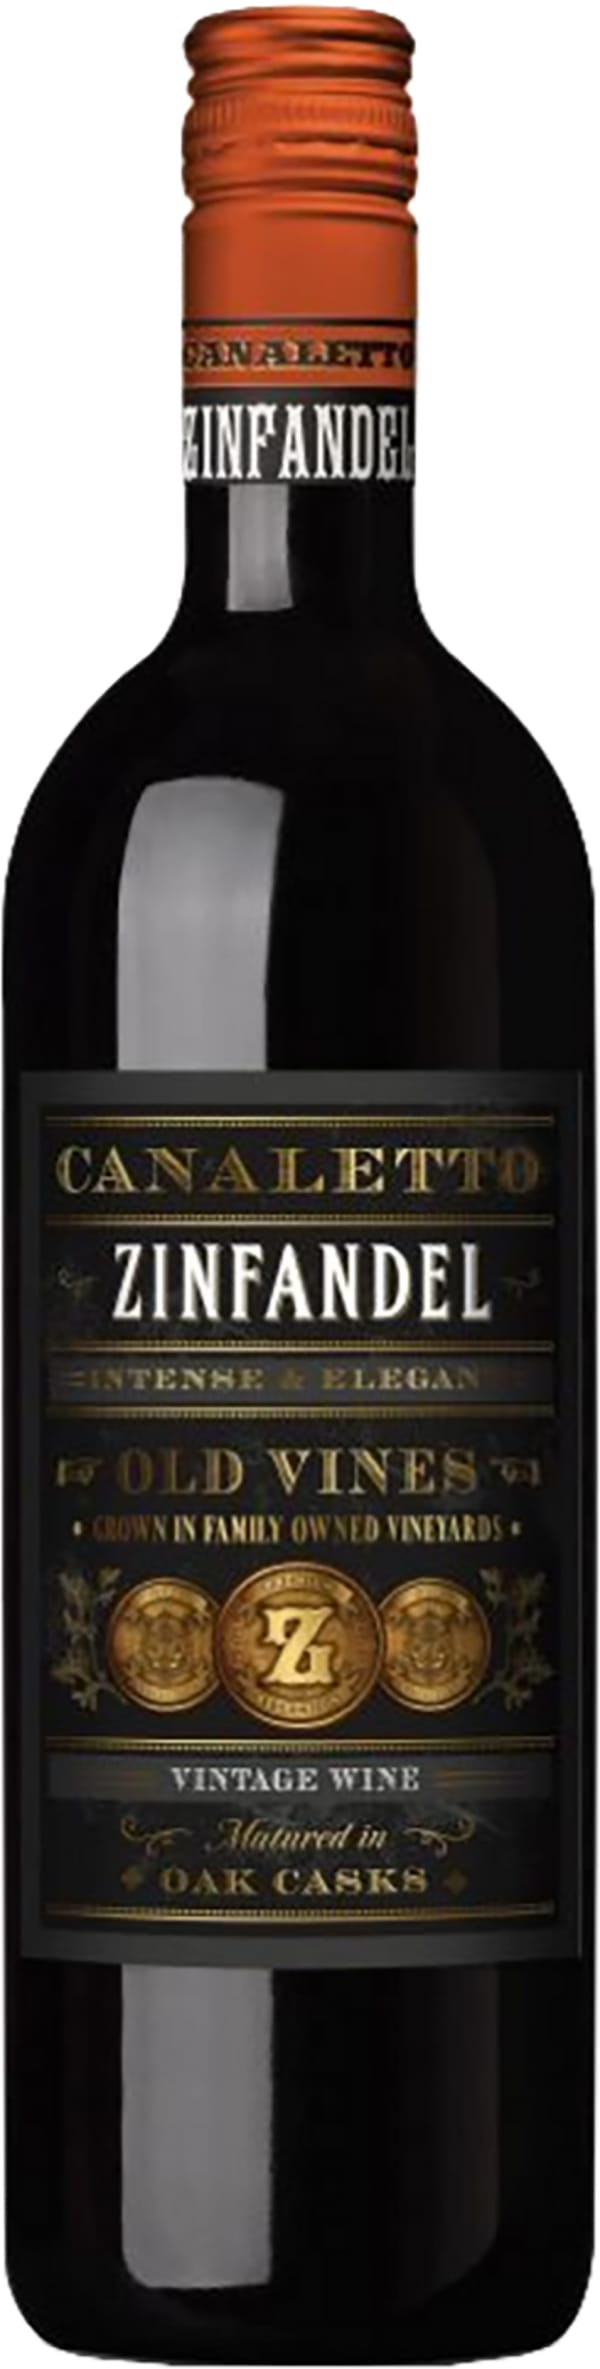 Canaletto Zinfandel 2014